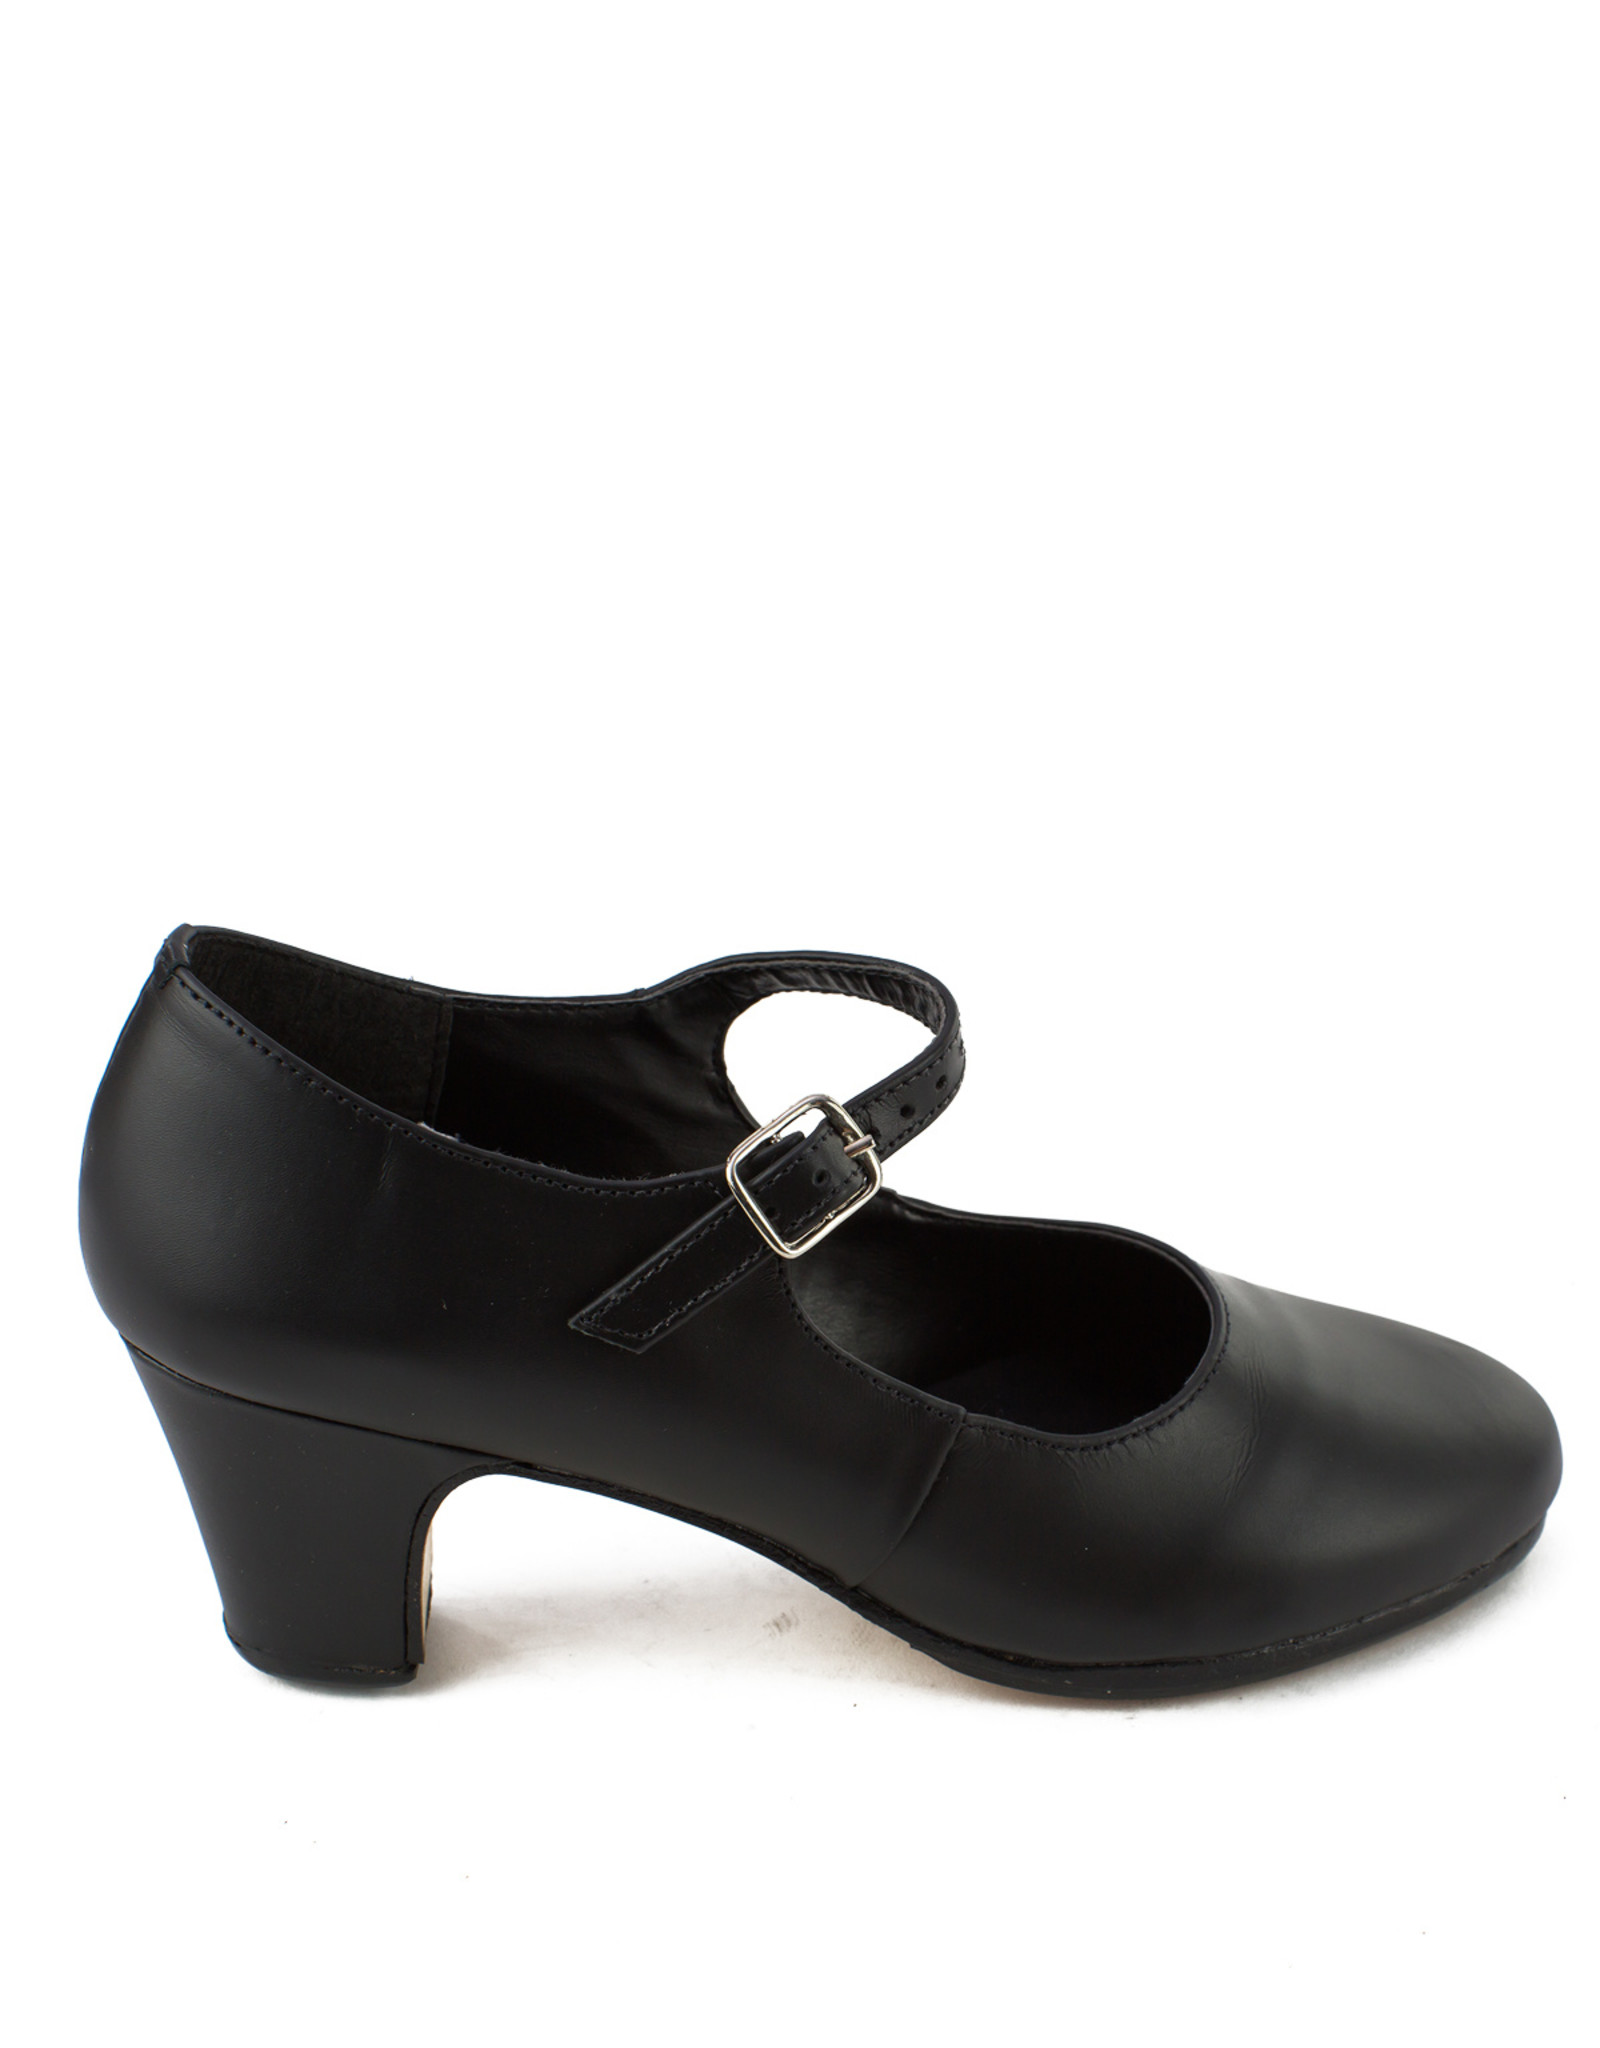 SO DANCA MARISOL FLAMENCO SHOES (FL12)